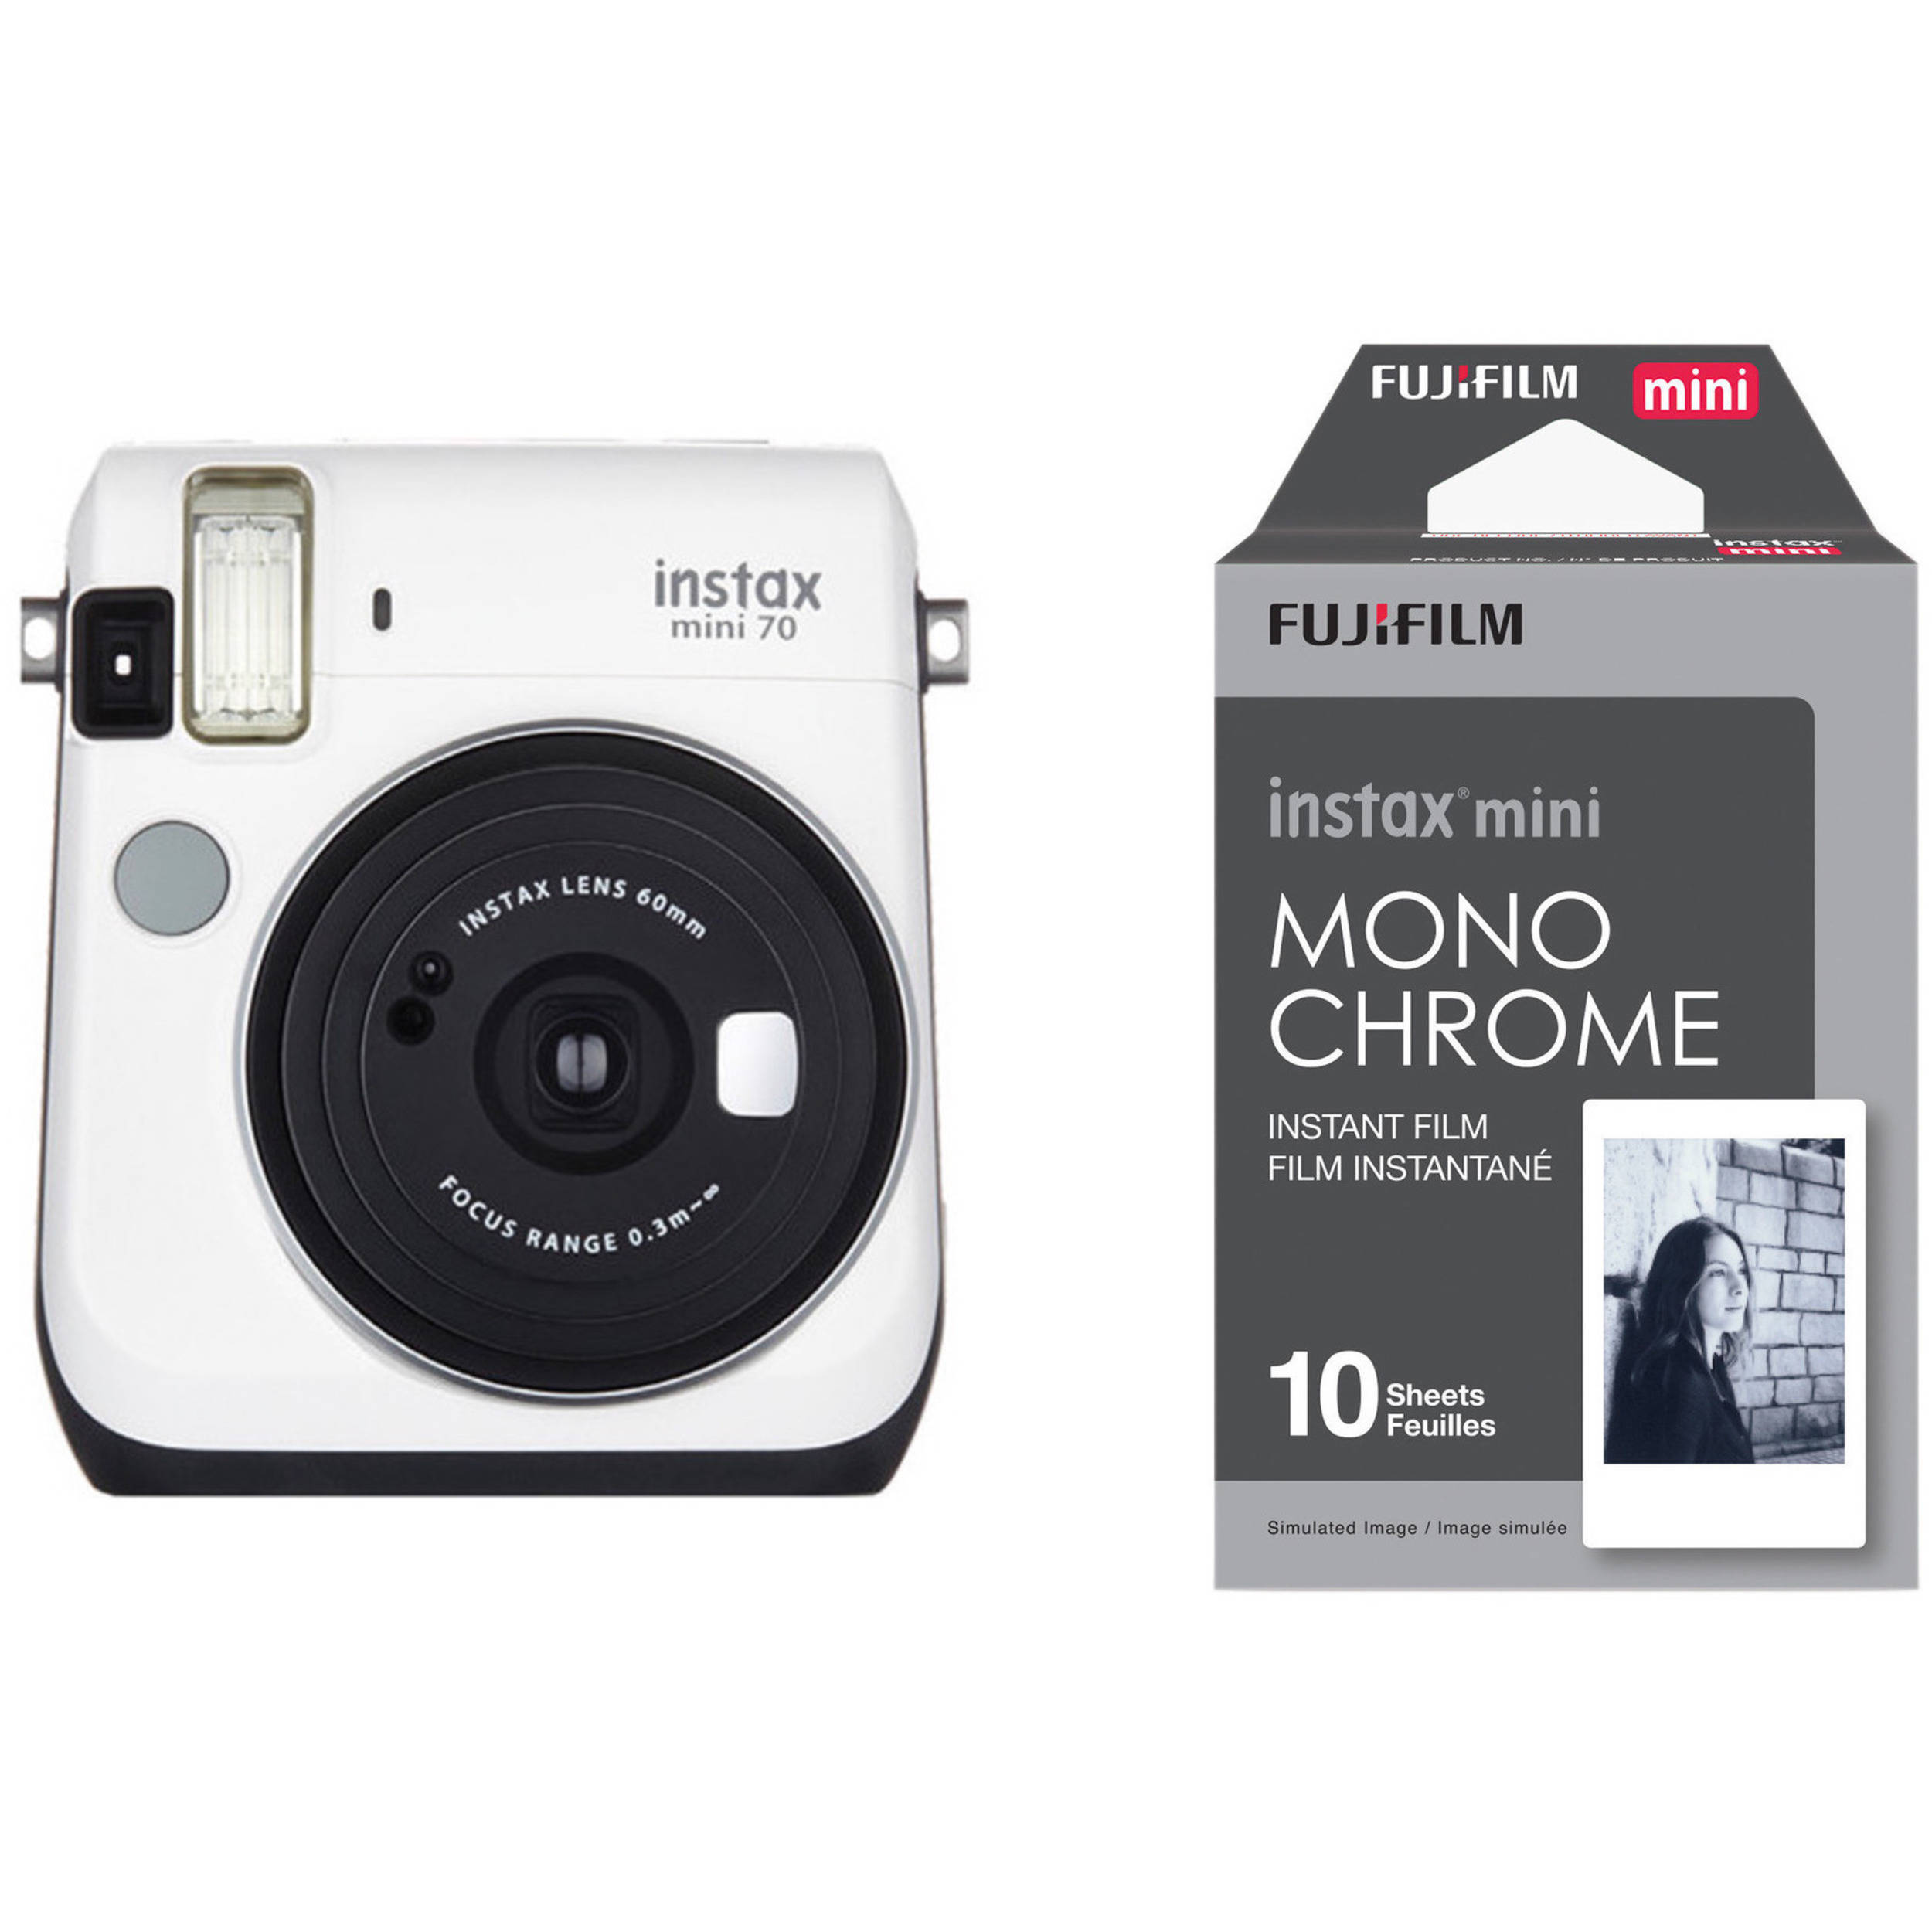 fujifilm instax mini 70 instant film camera with. Black Bedroom Furniture Sets. Home Design Ideas